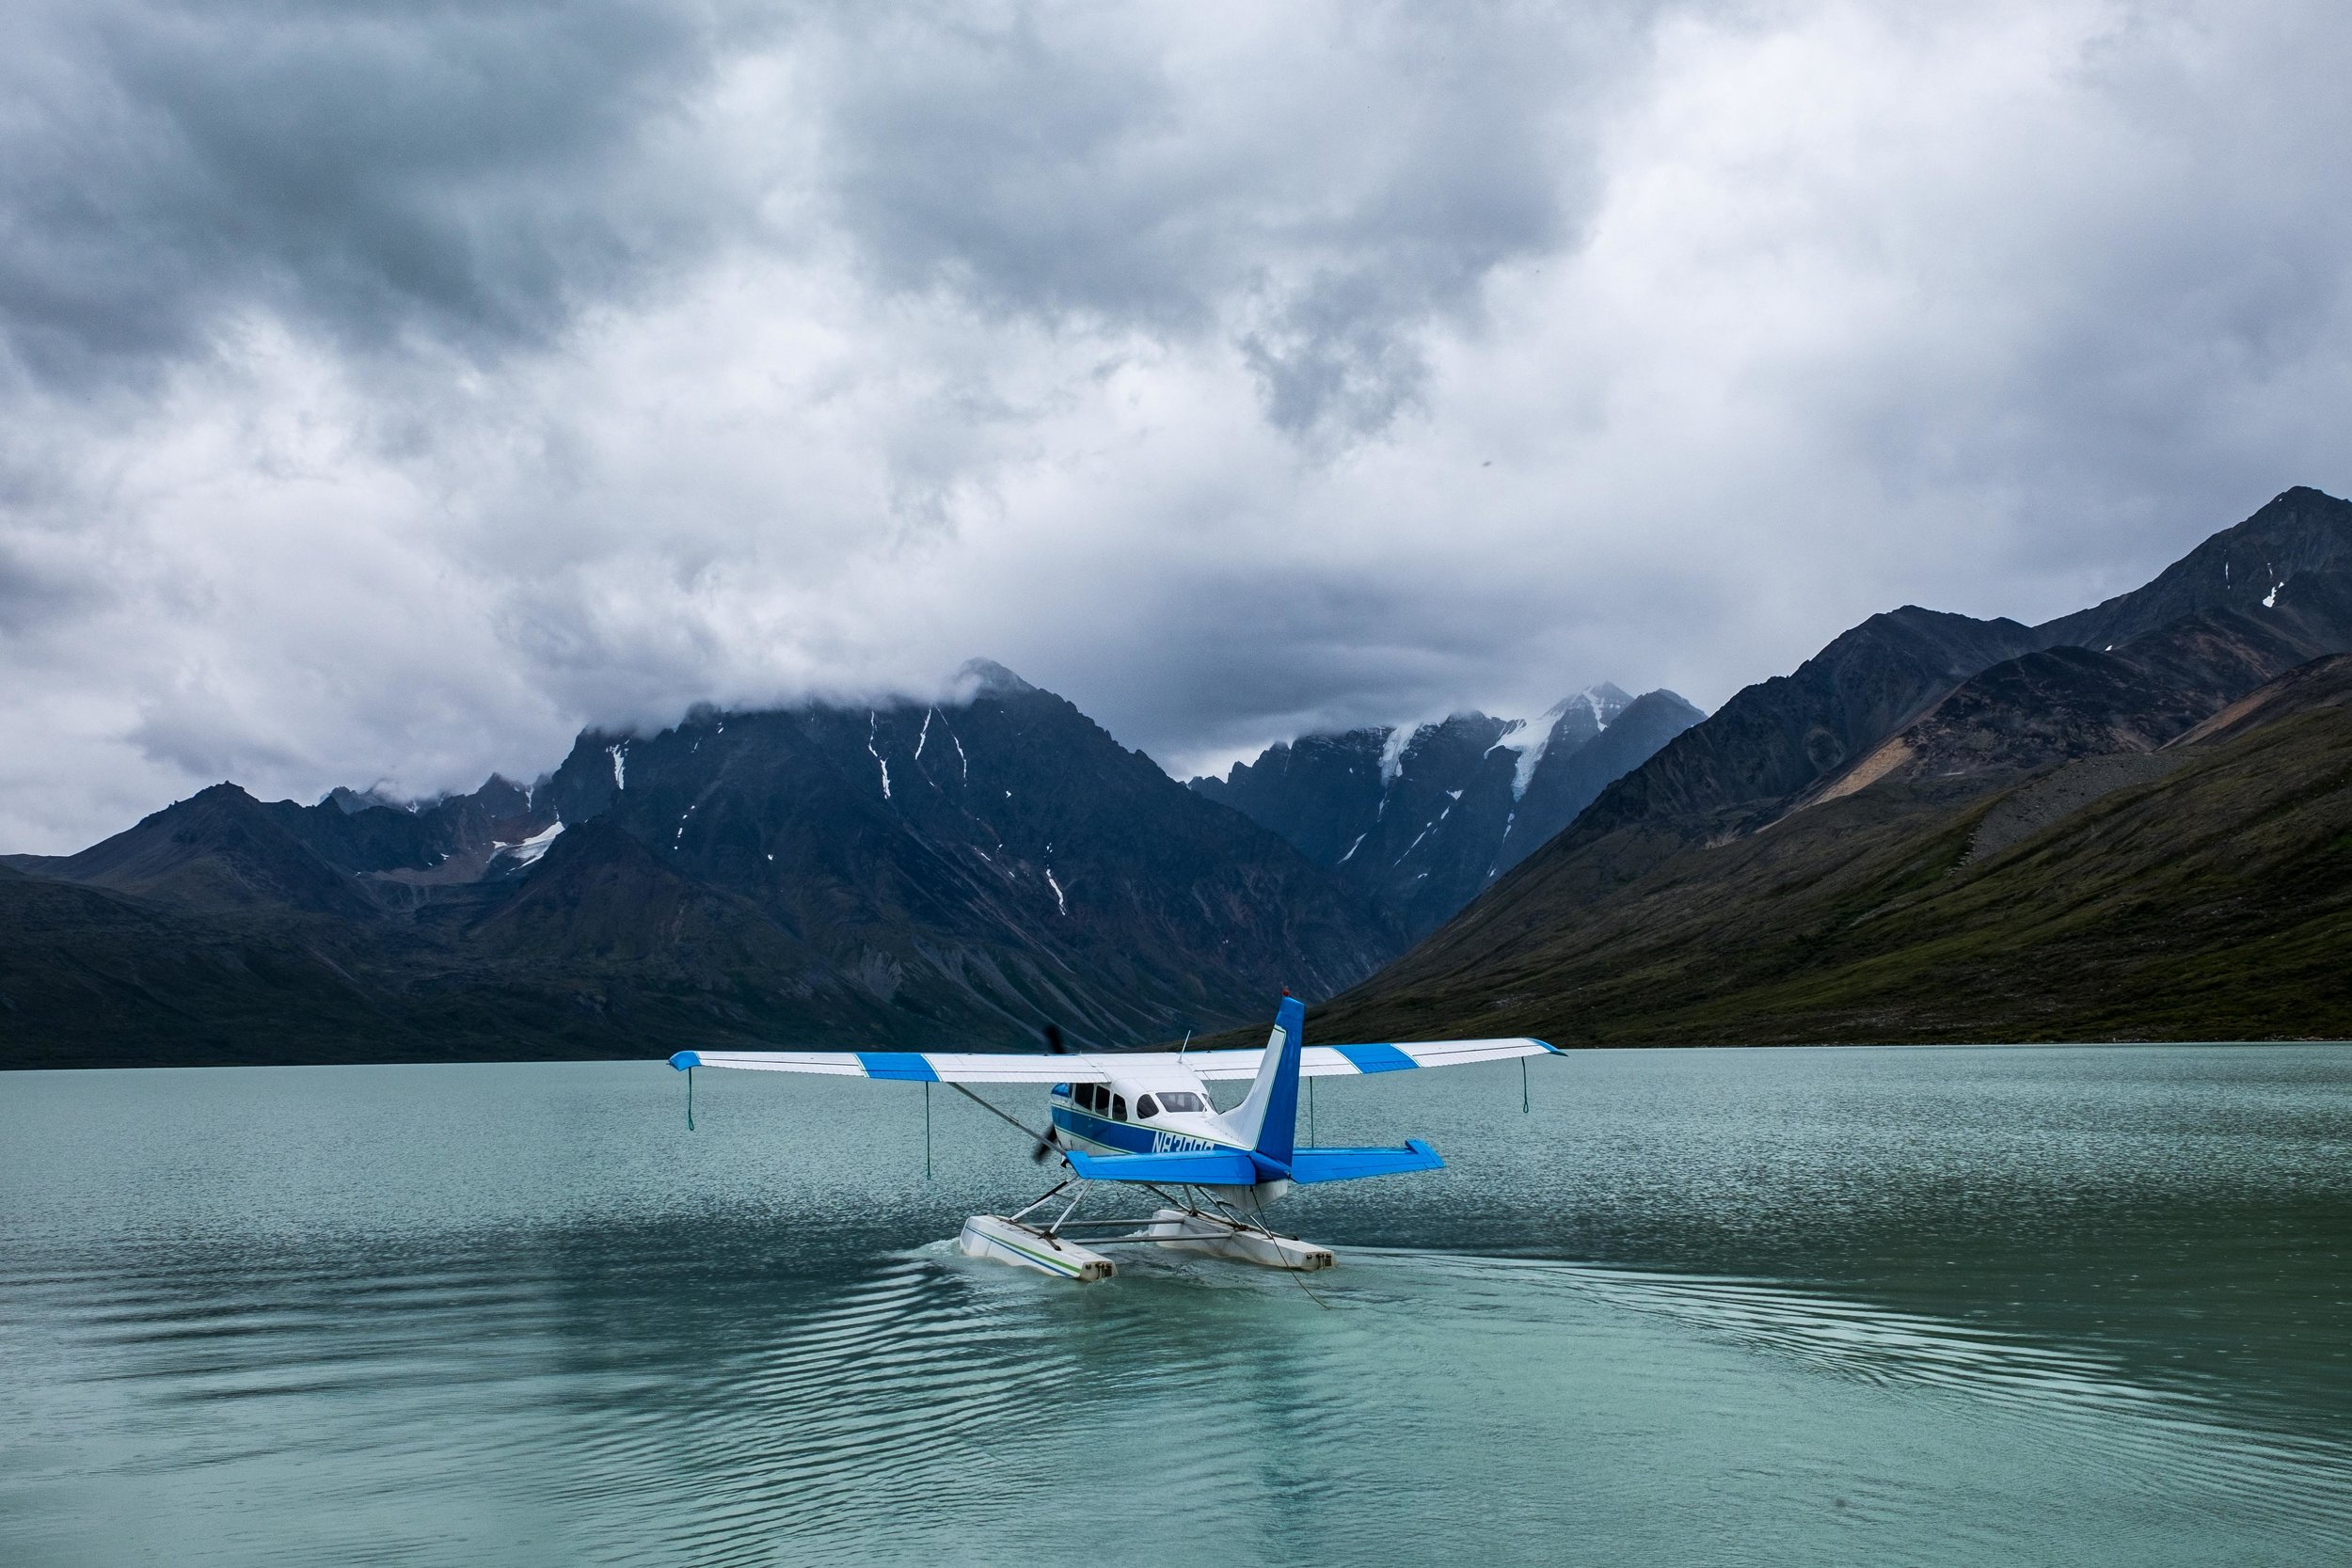 Our float plane takes off leaving us alone in the wilderness at Turquoise Lake. Awesome!